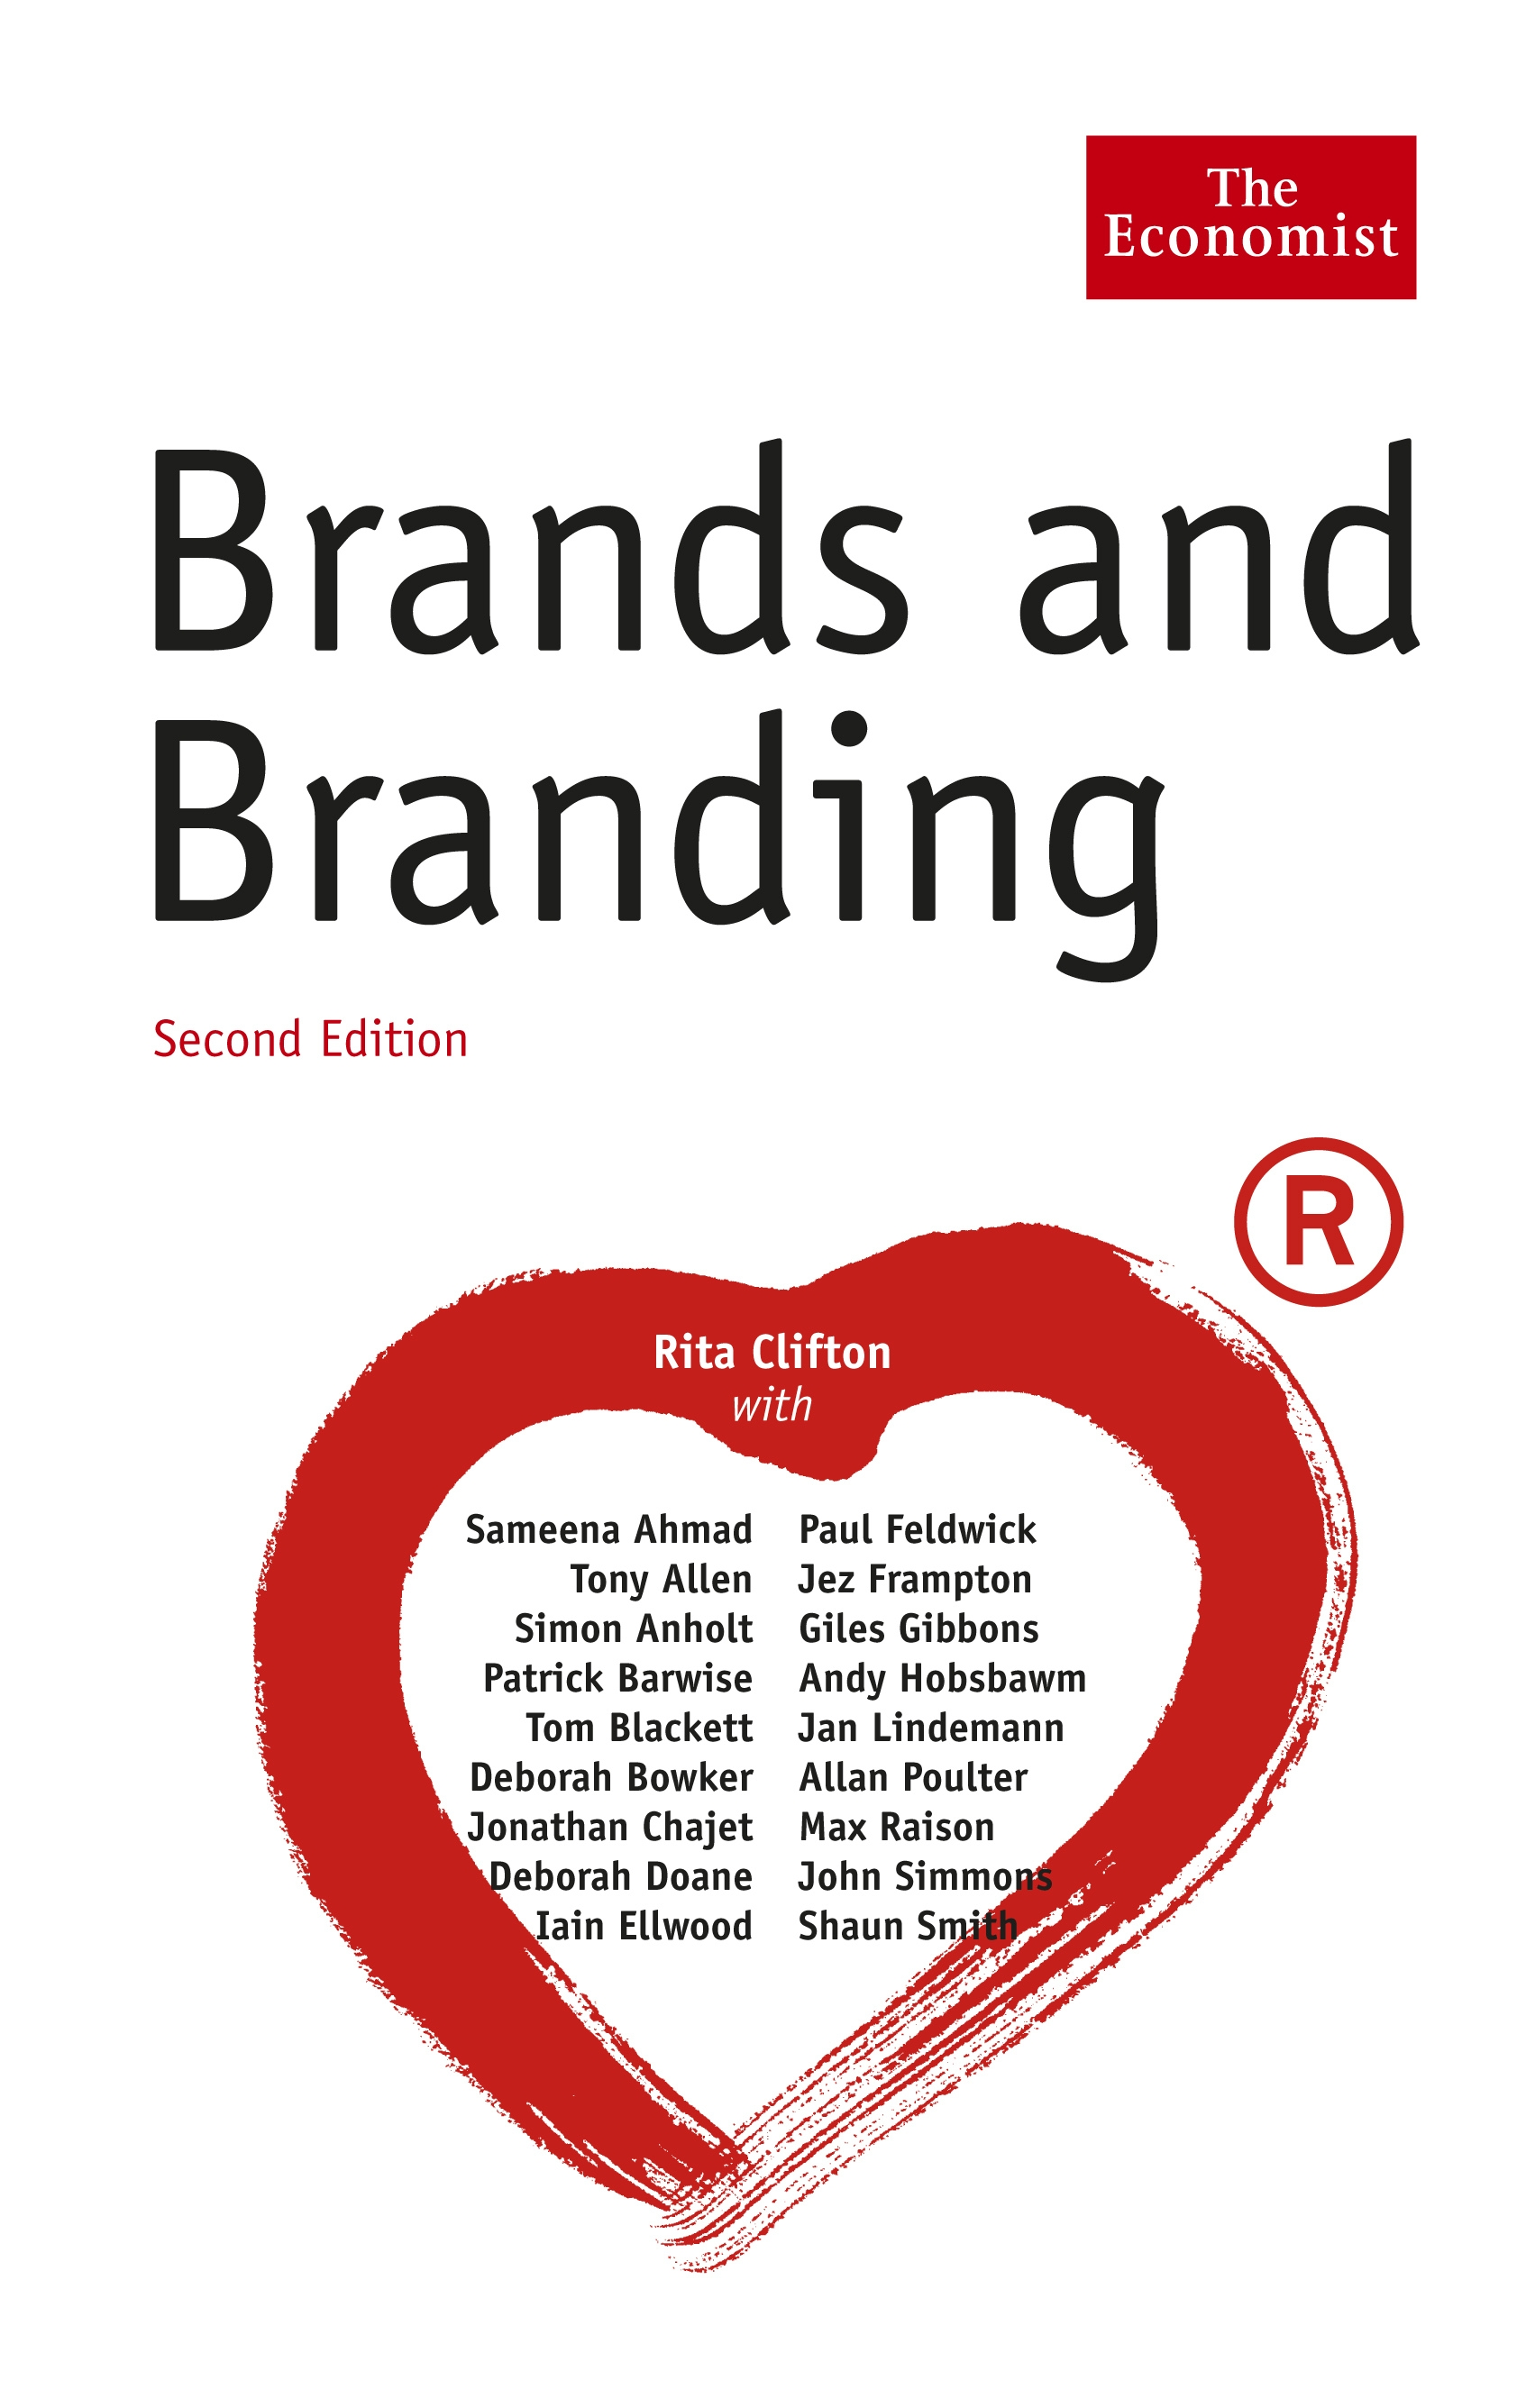 Download Ebook The Economist: Brands and Branding by Rita Clifton Pdf